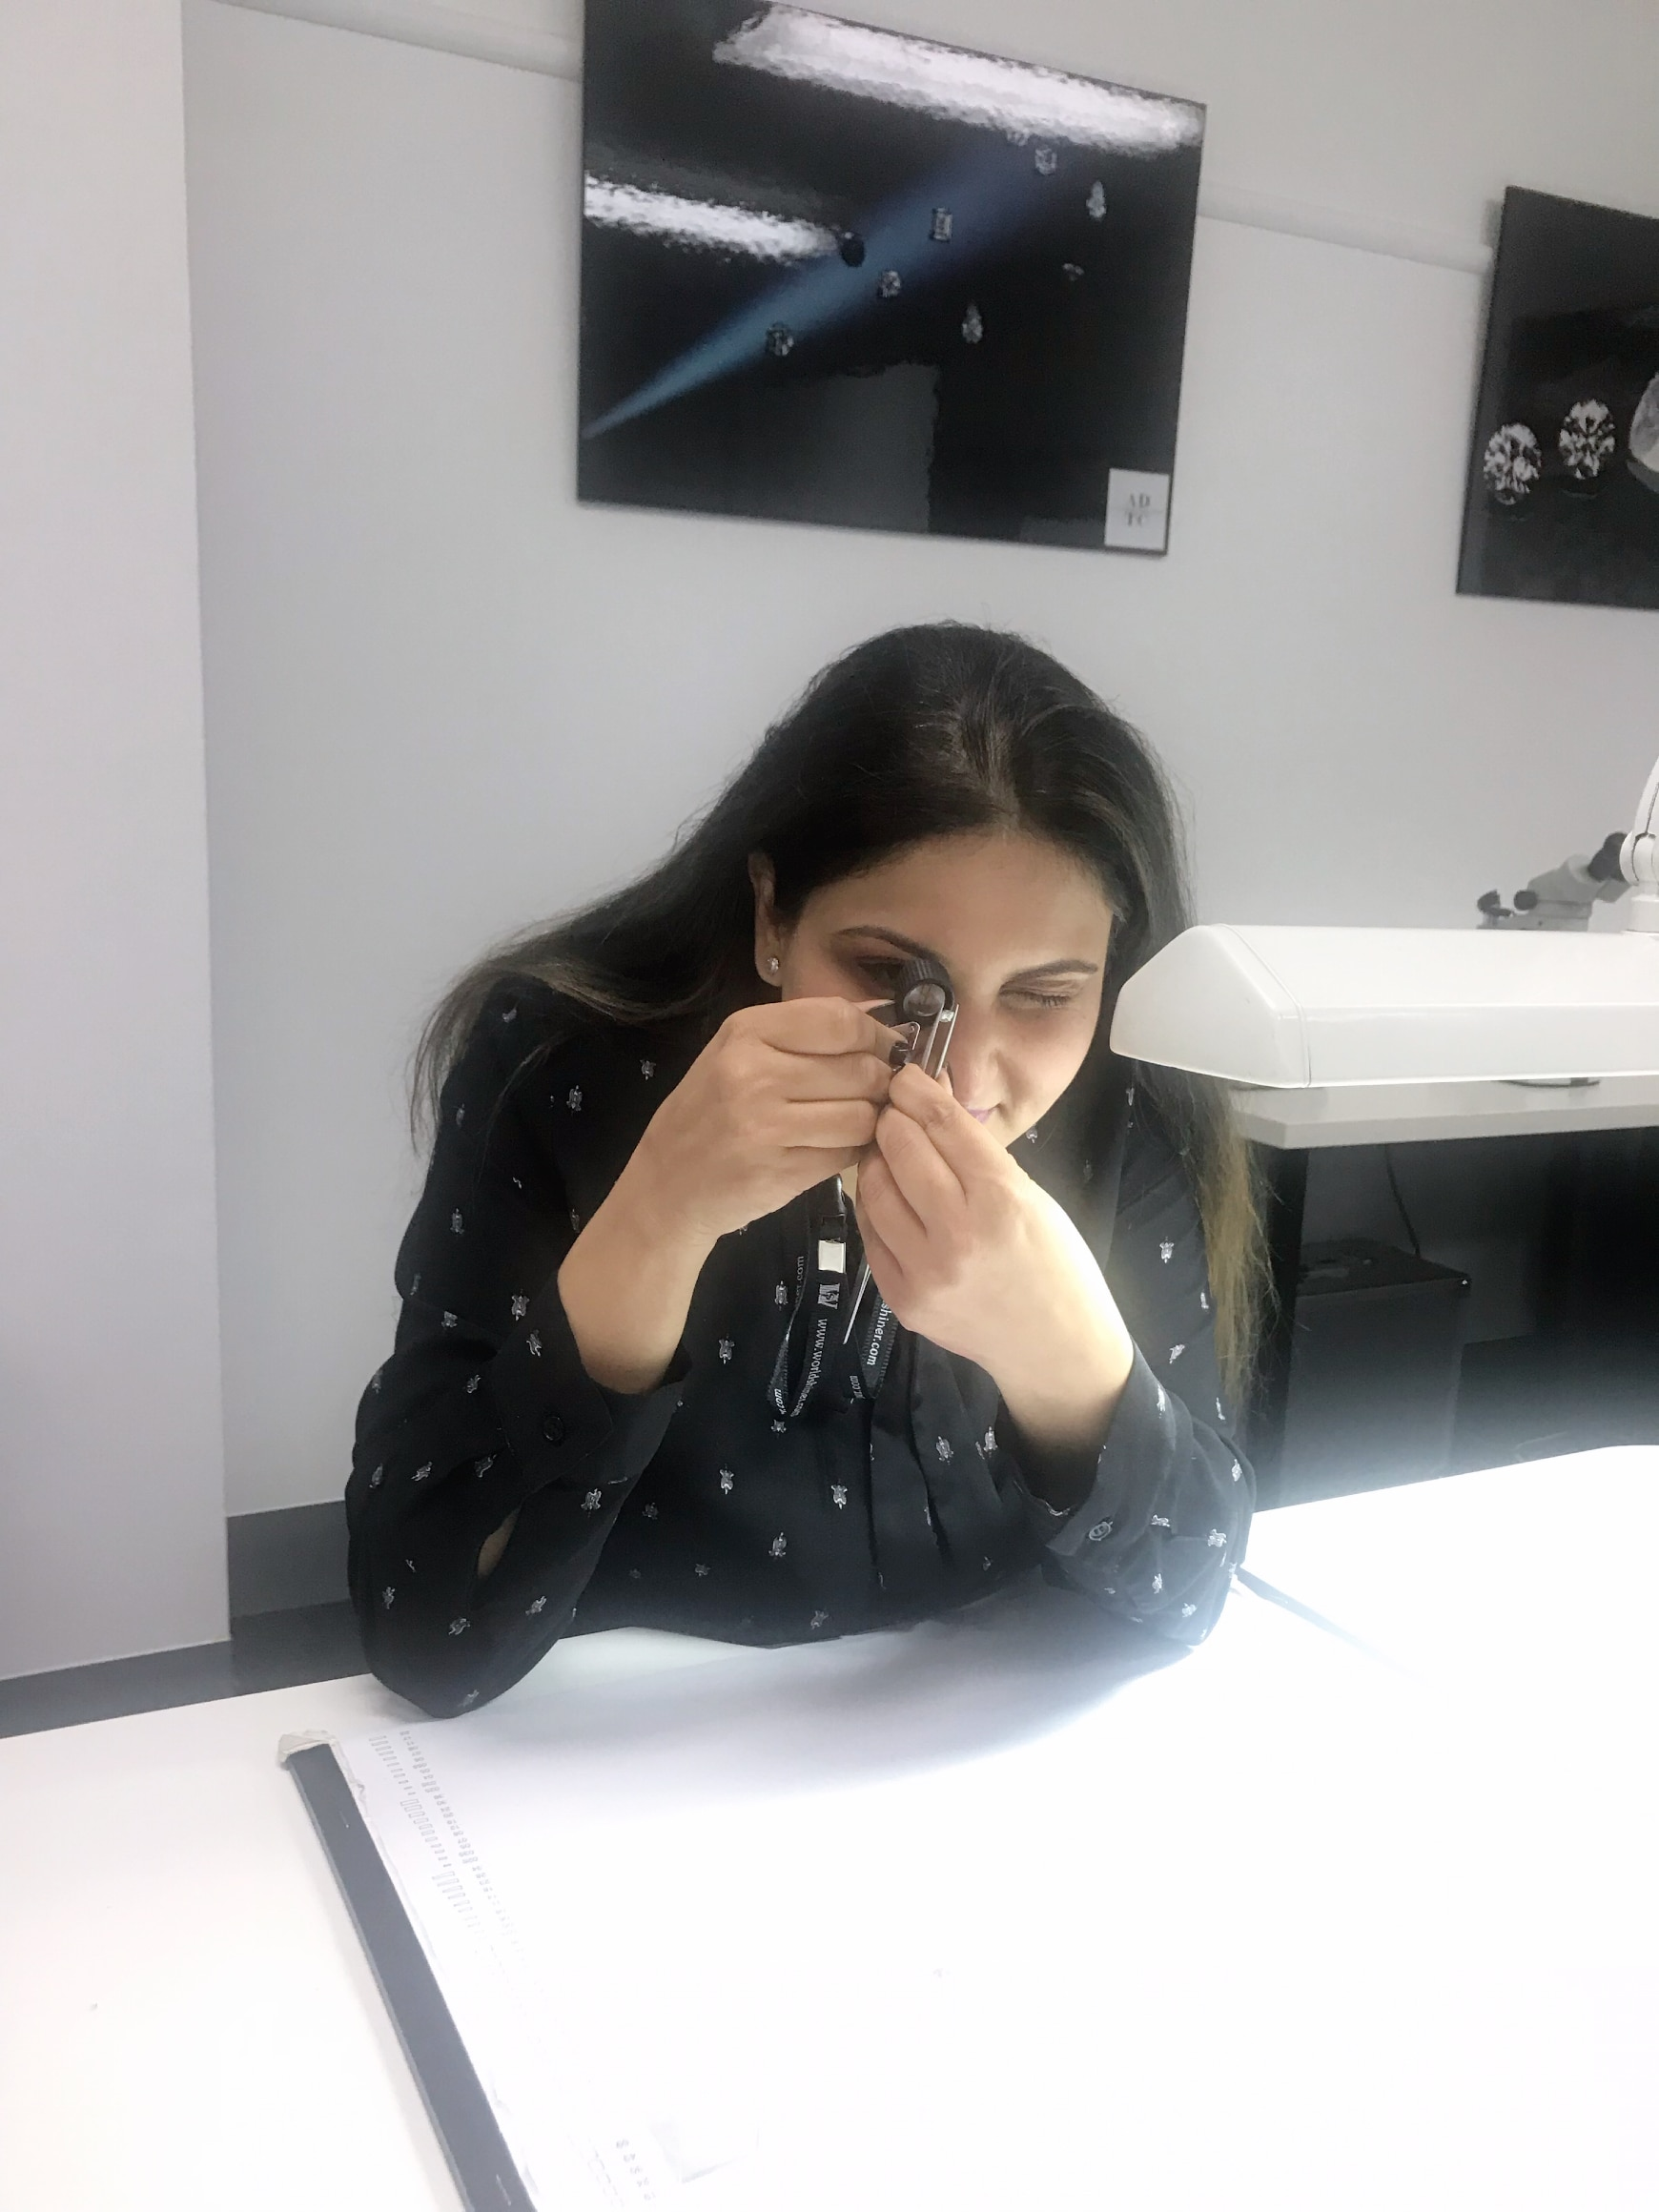 Ms Reet Phulwani at work